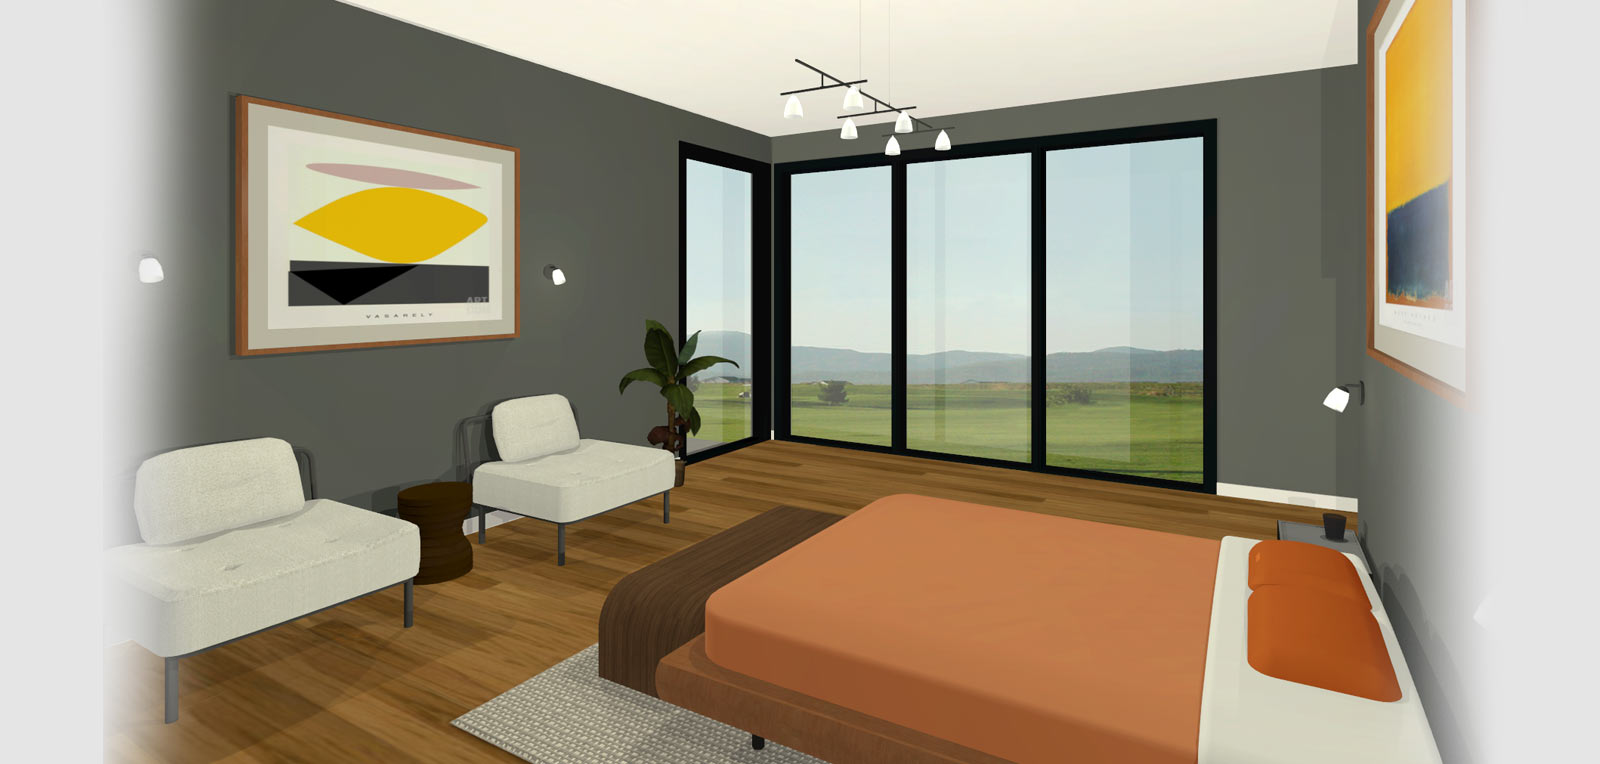 Home designer interior design software House room design software